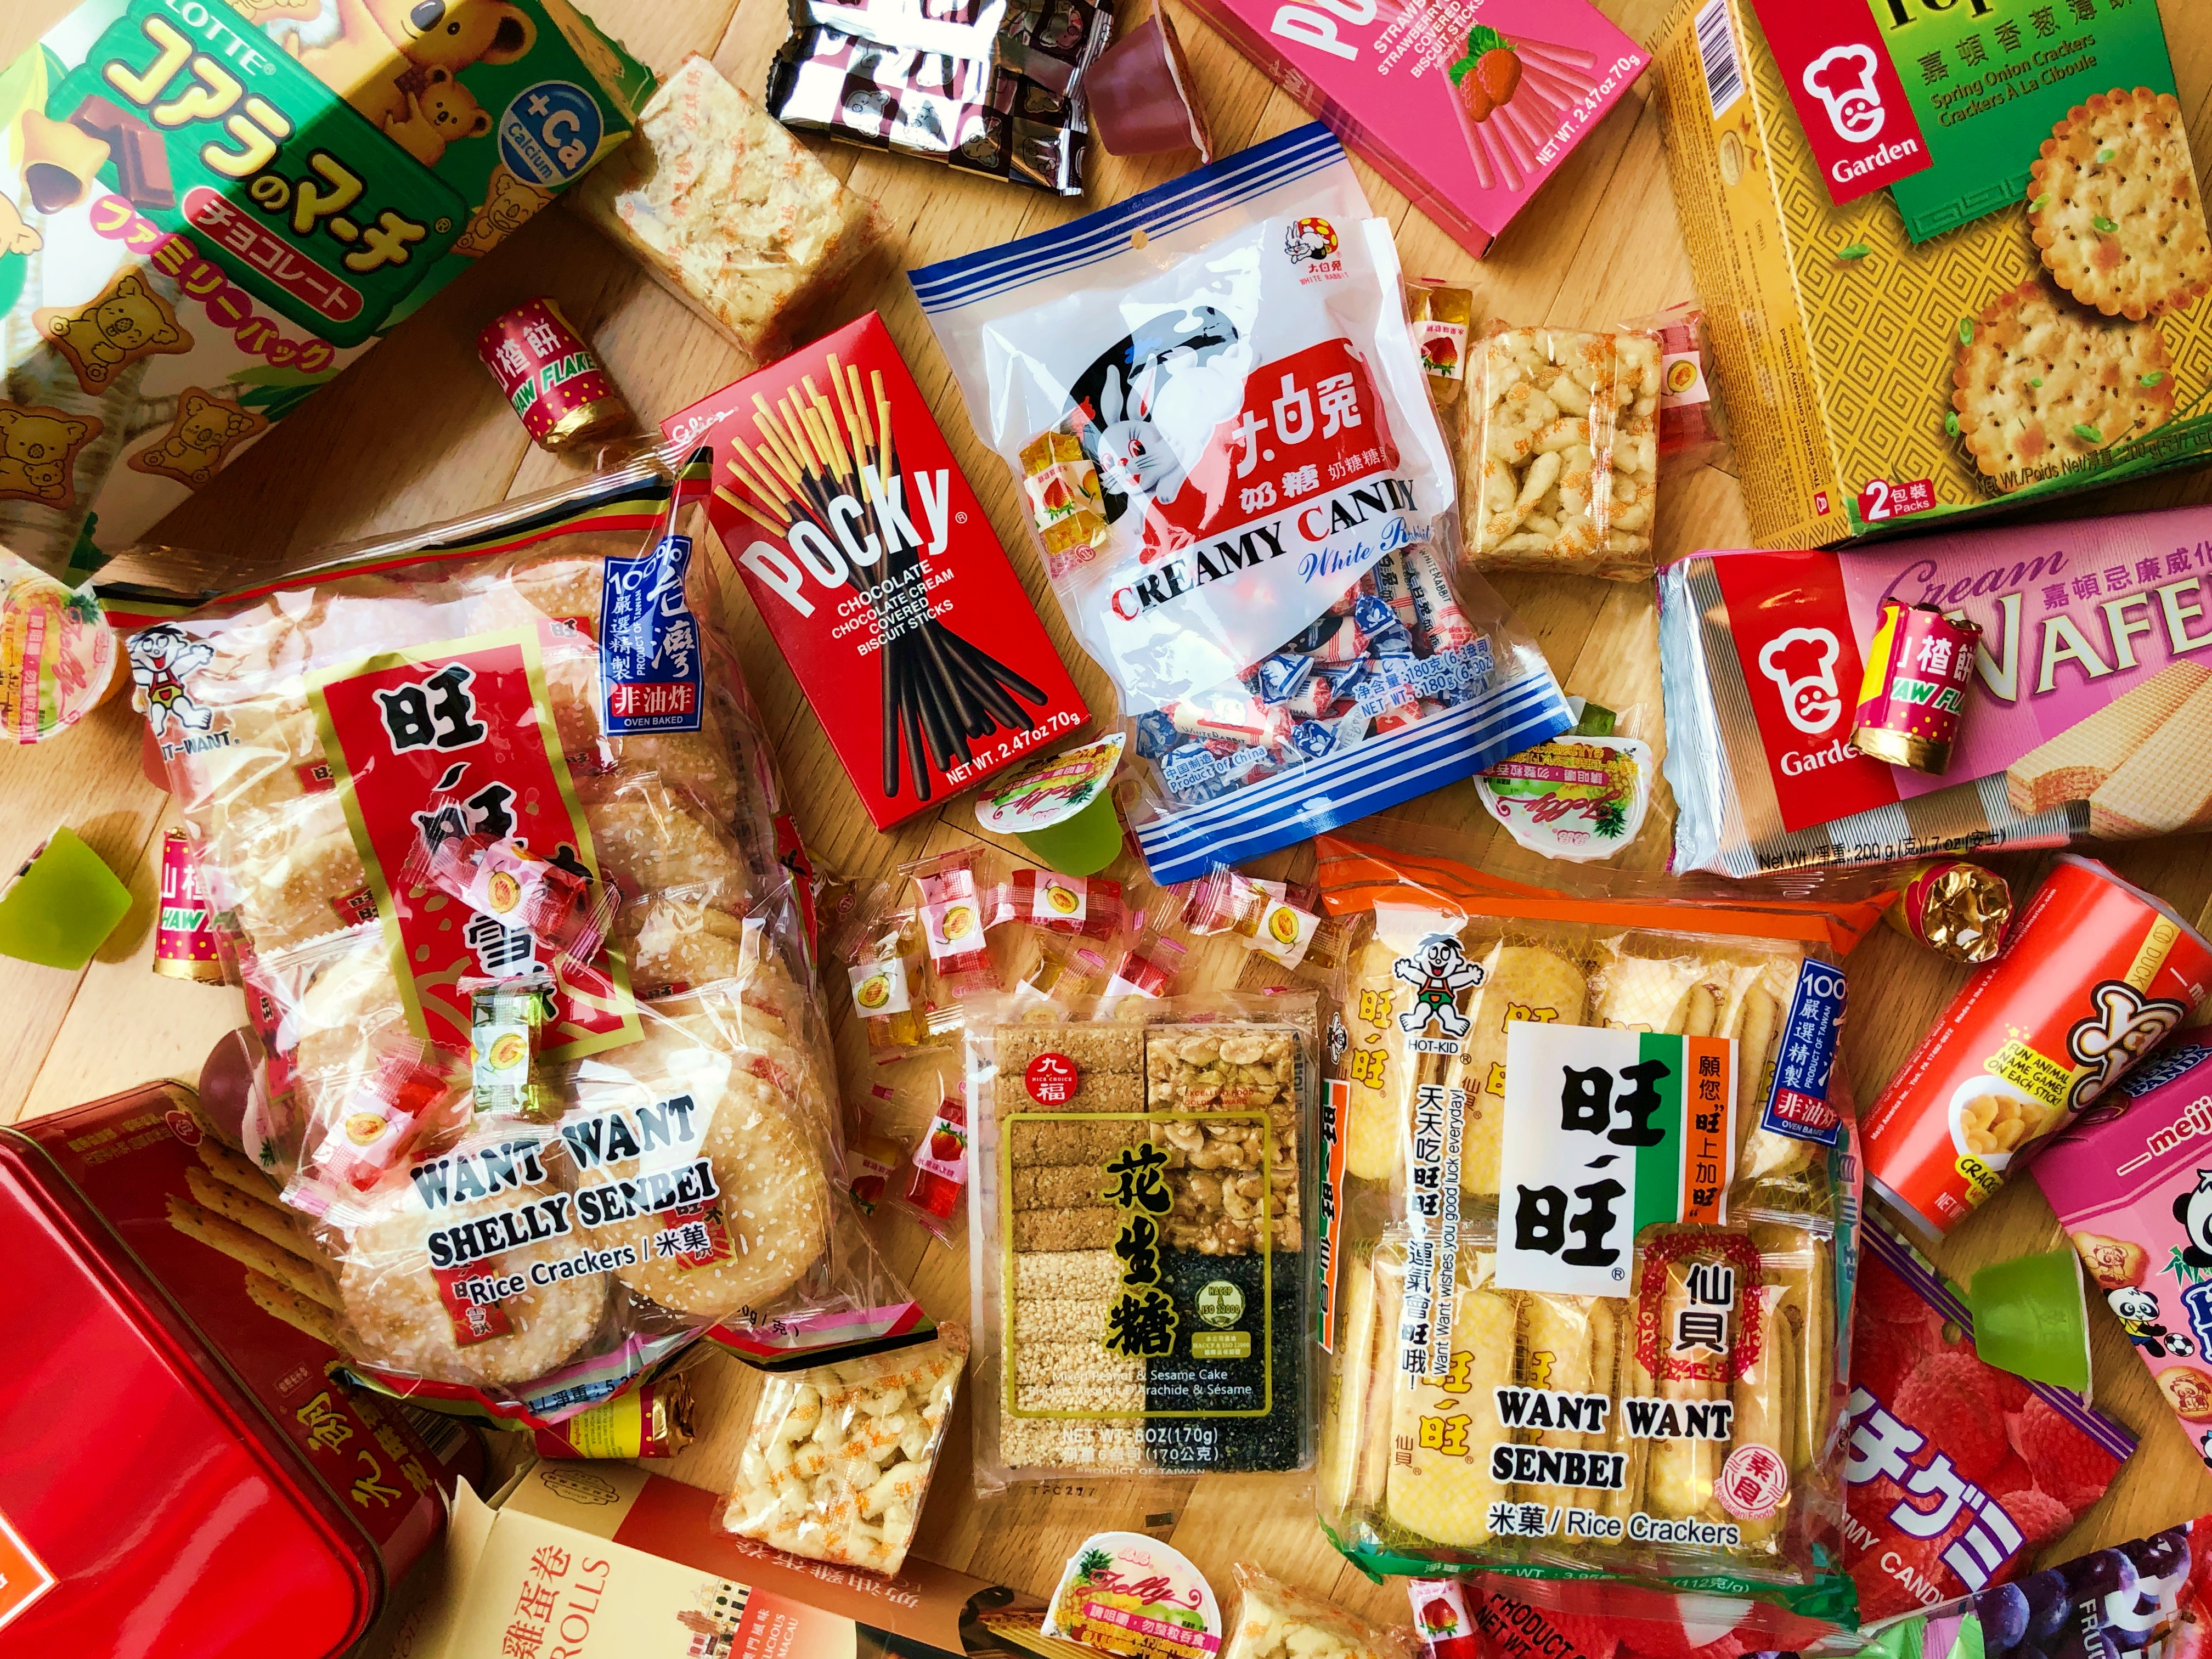 A top-down spread of Asian snacks, including Want Want rice crackers, Pocky, White Rabbit candy, sachima, wafers, crackers, fruit jelly and candy.